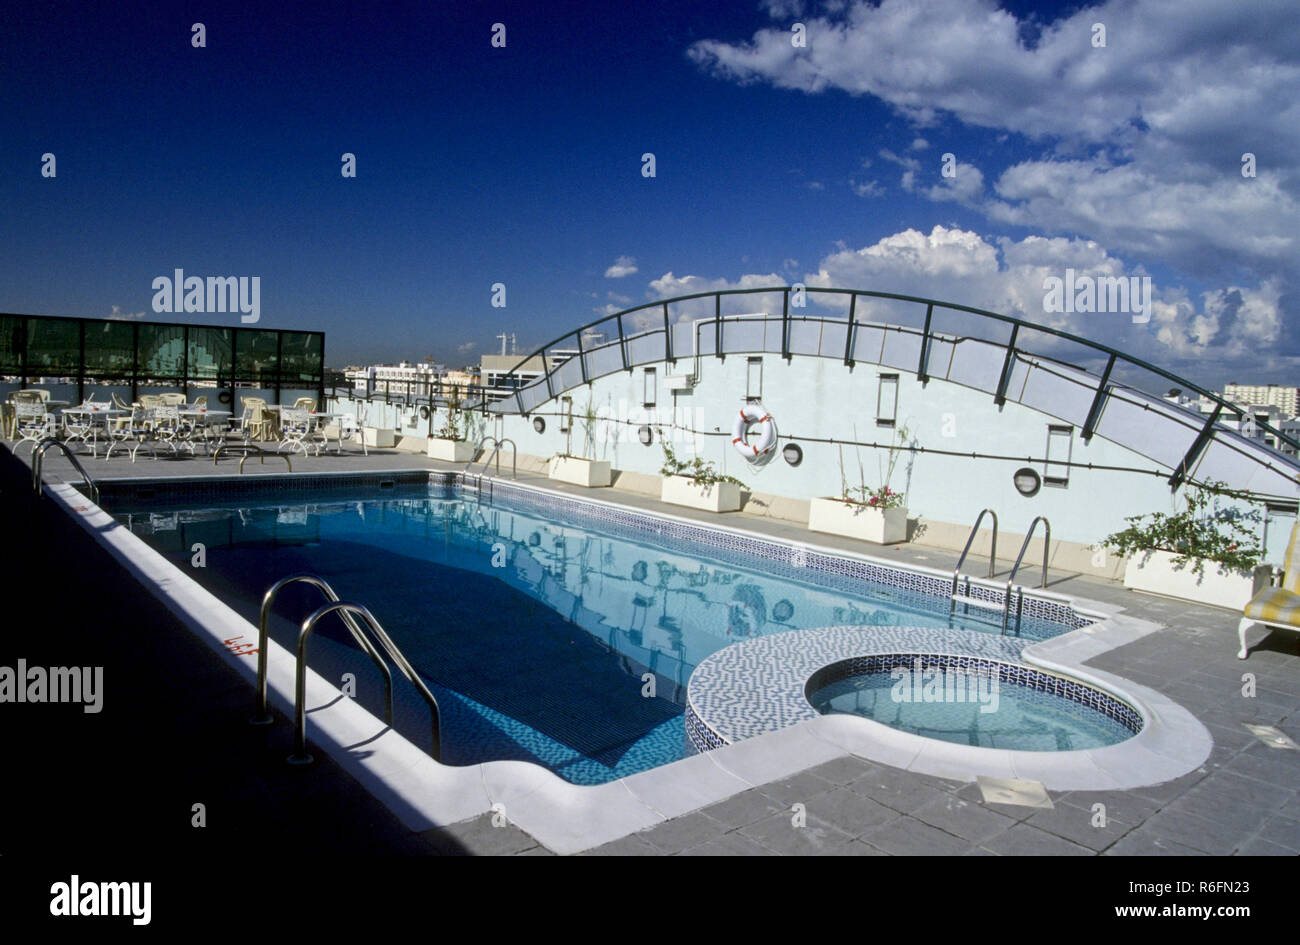 Swimming pool blue clean water and stainless steel railings